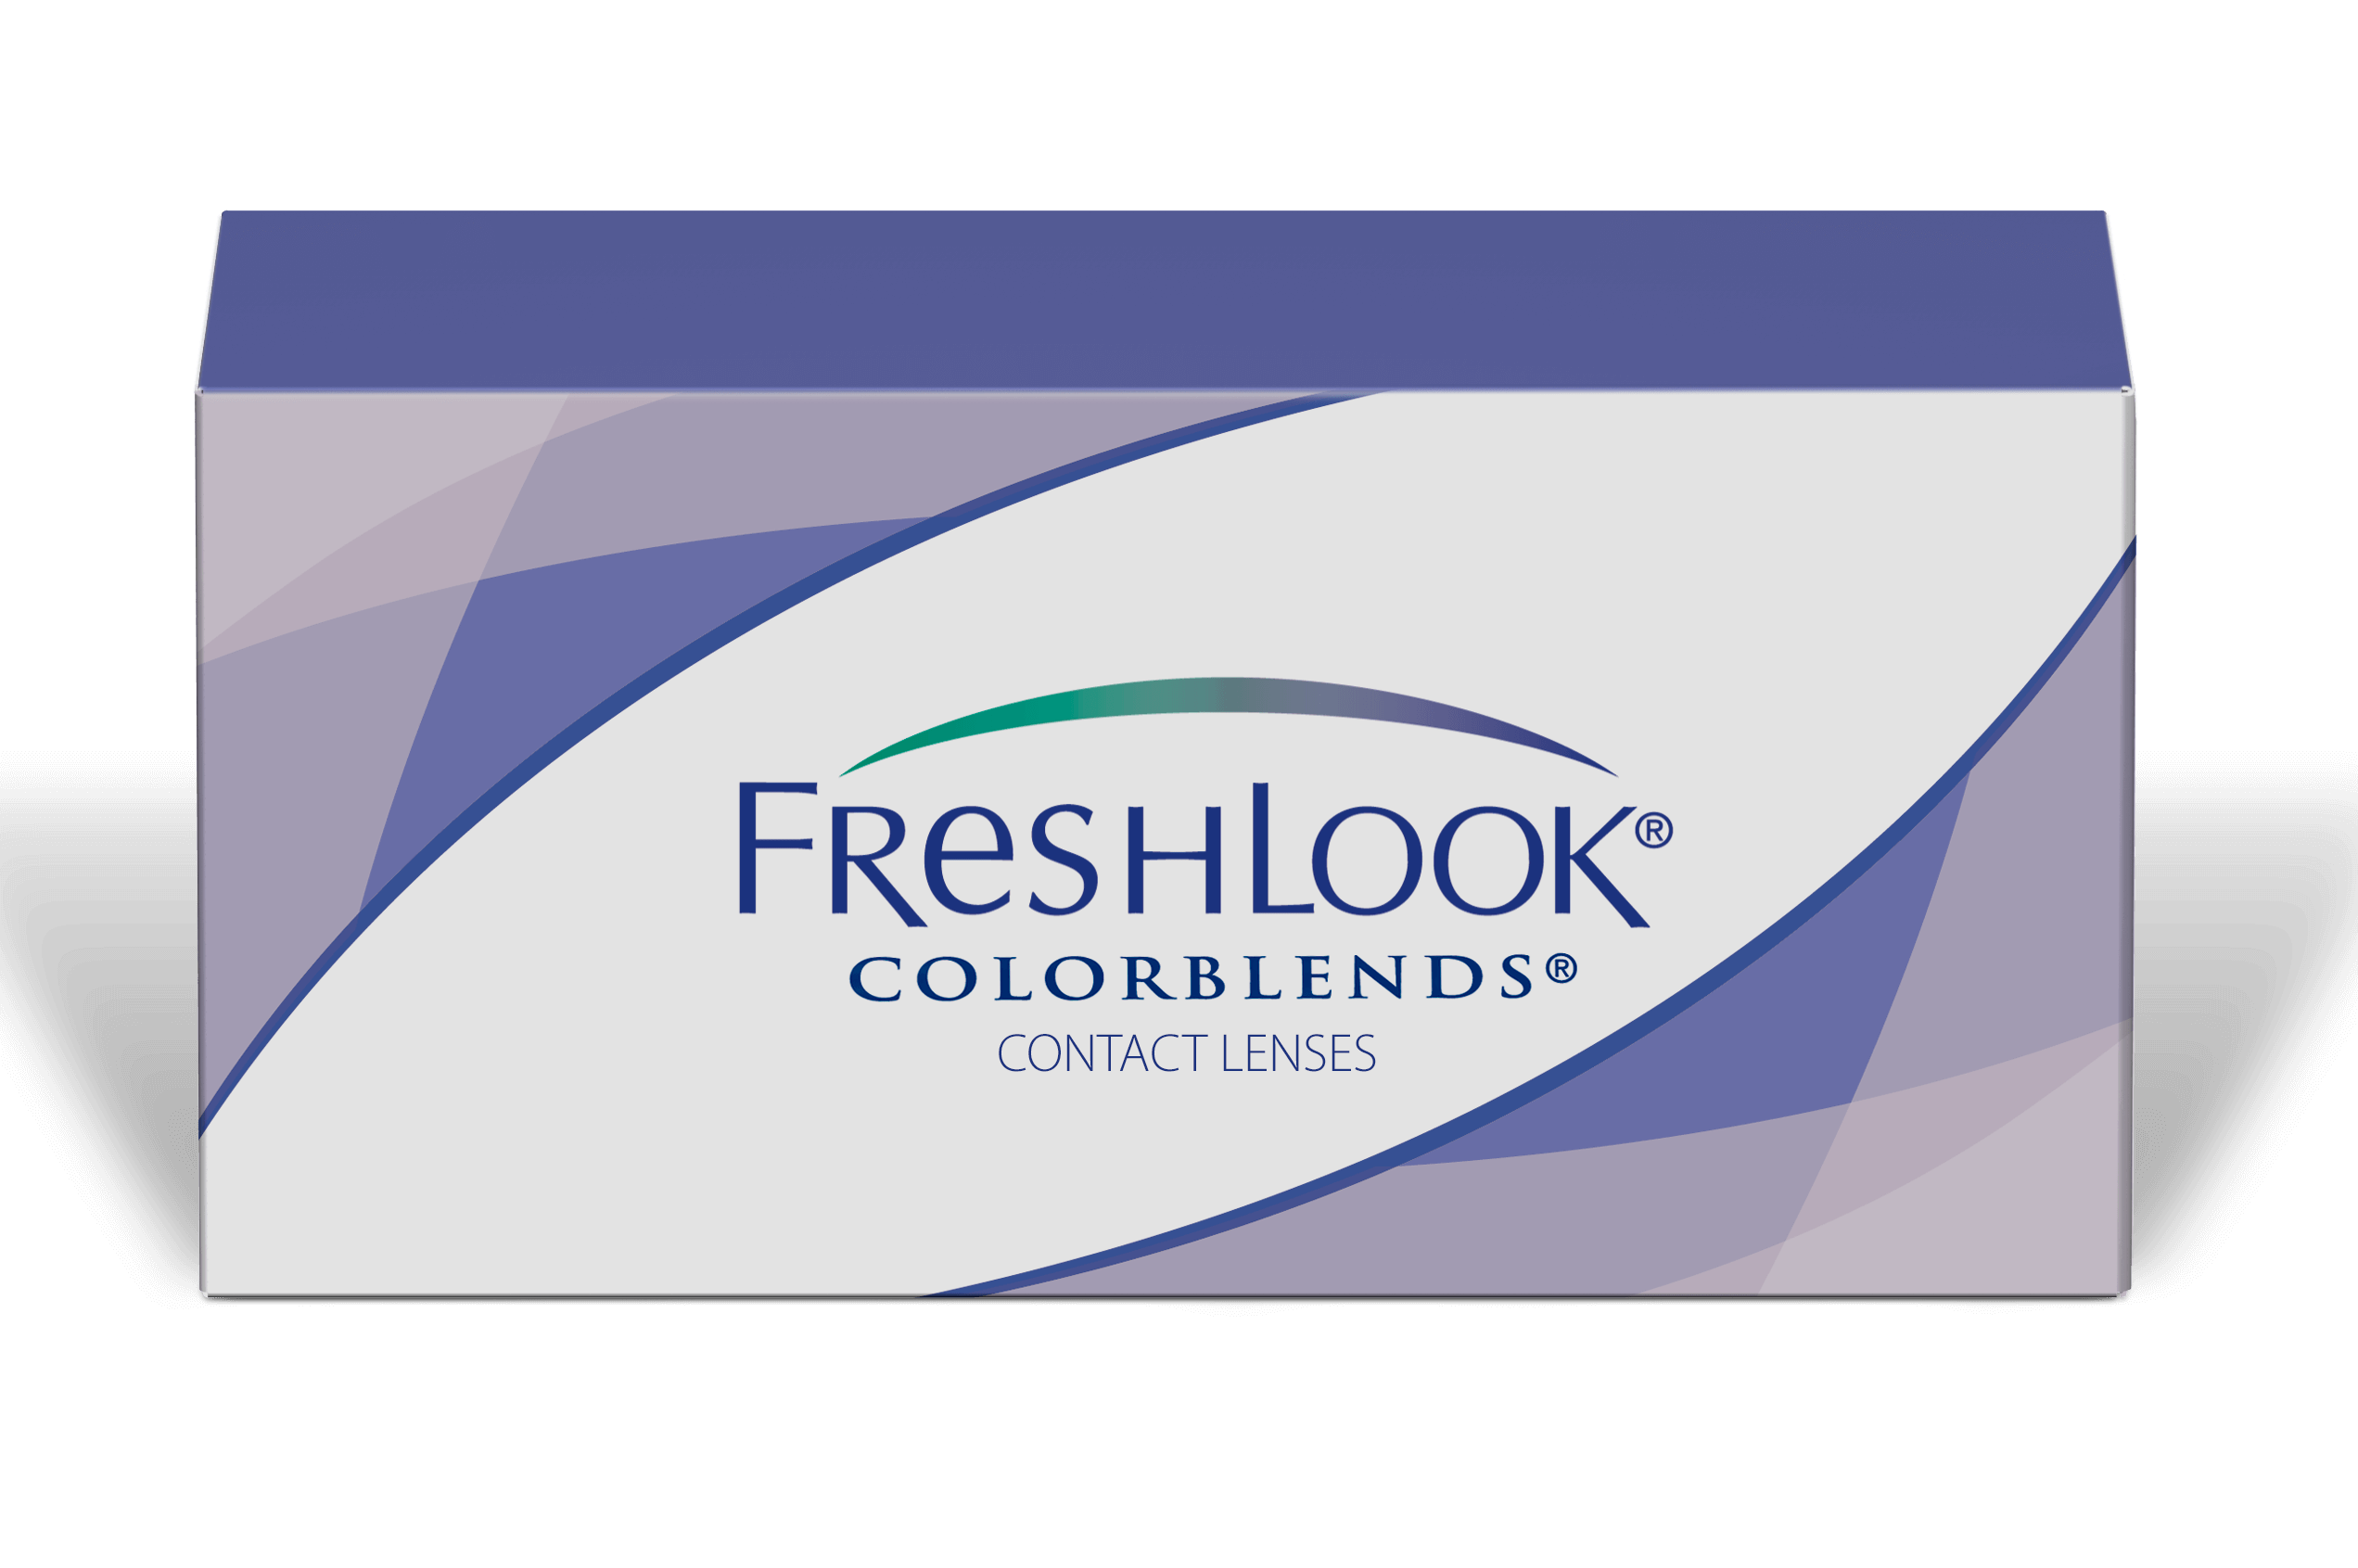 freshlook-colorblends